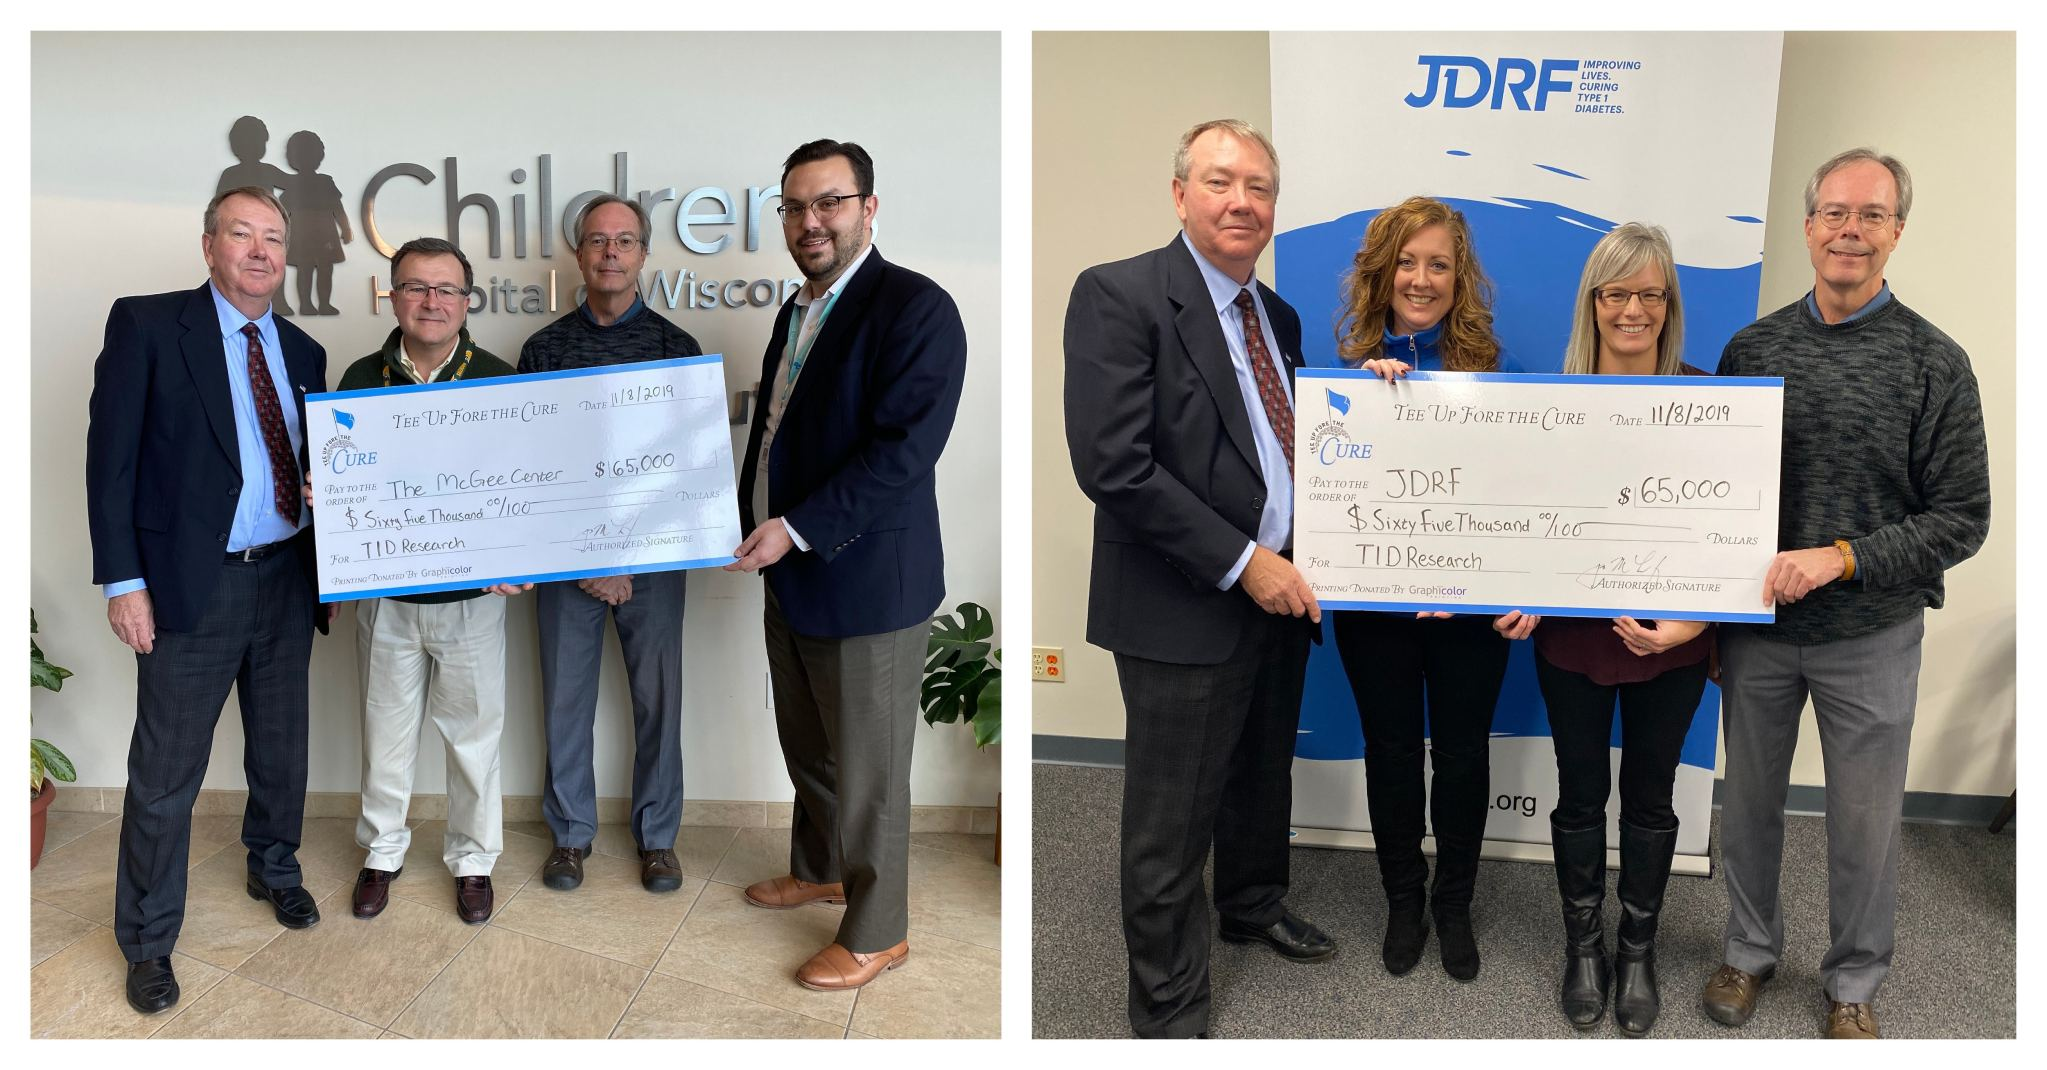 Jim and David Leef from Tee Up Fore the Cure presents fundraising checks to JDRF and Children's Hospital Max McGee Center at Children's Hospital